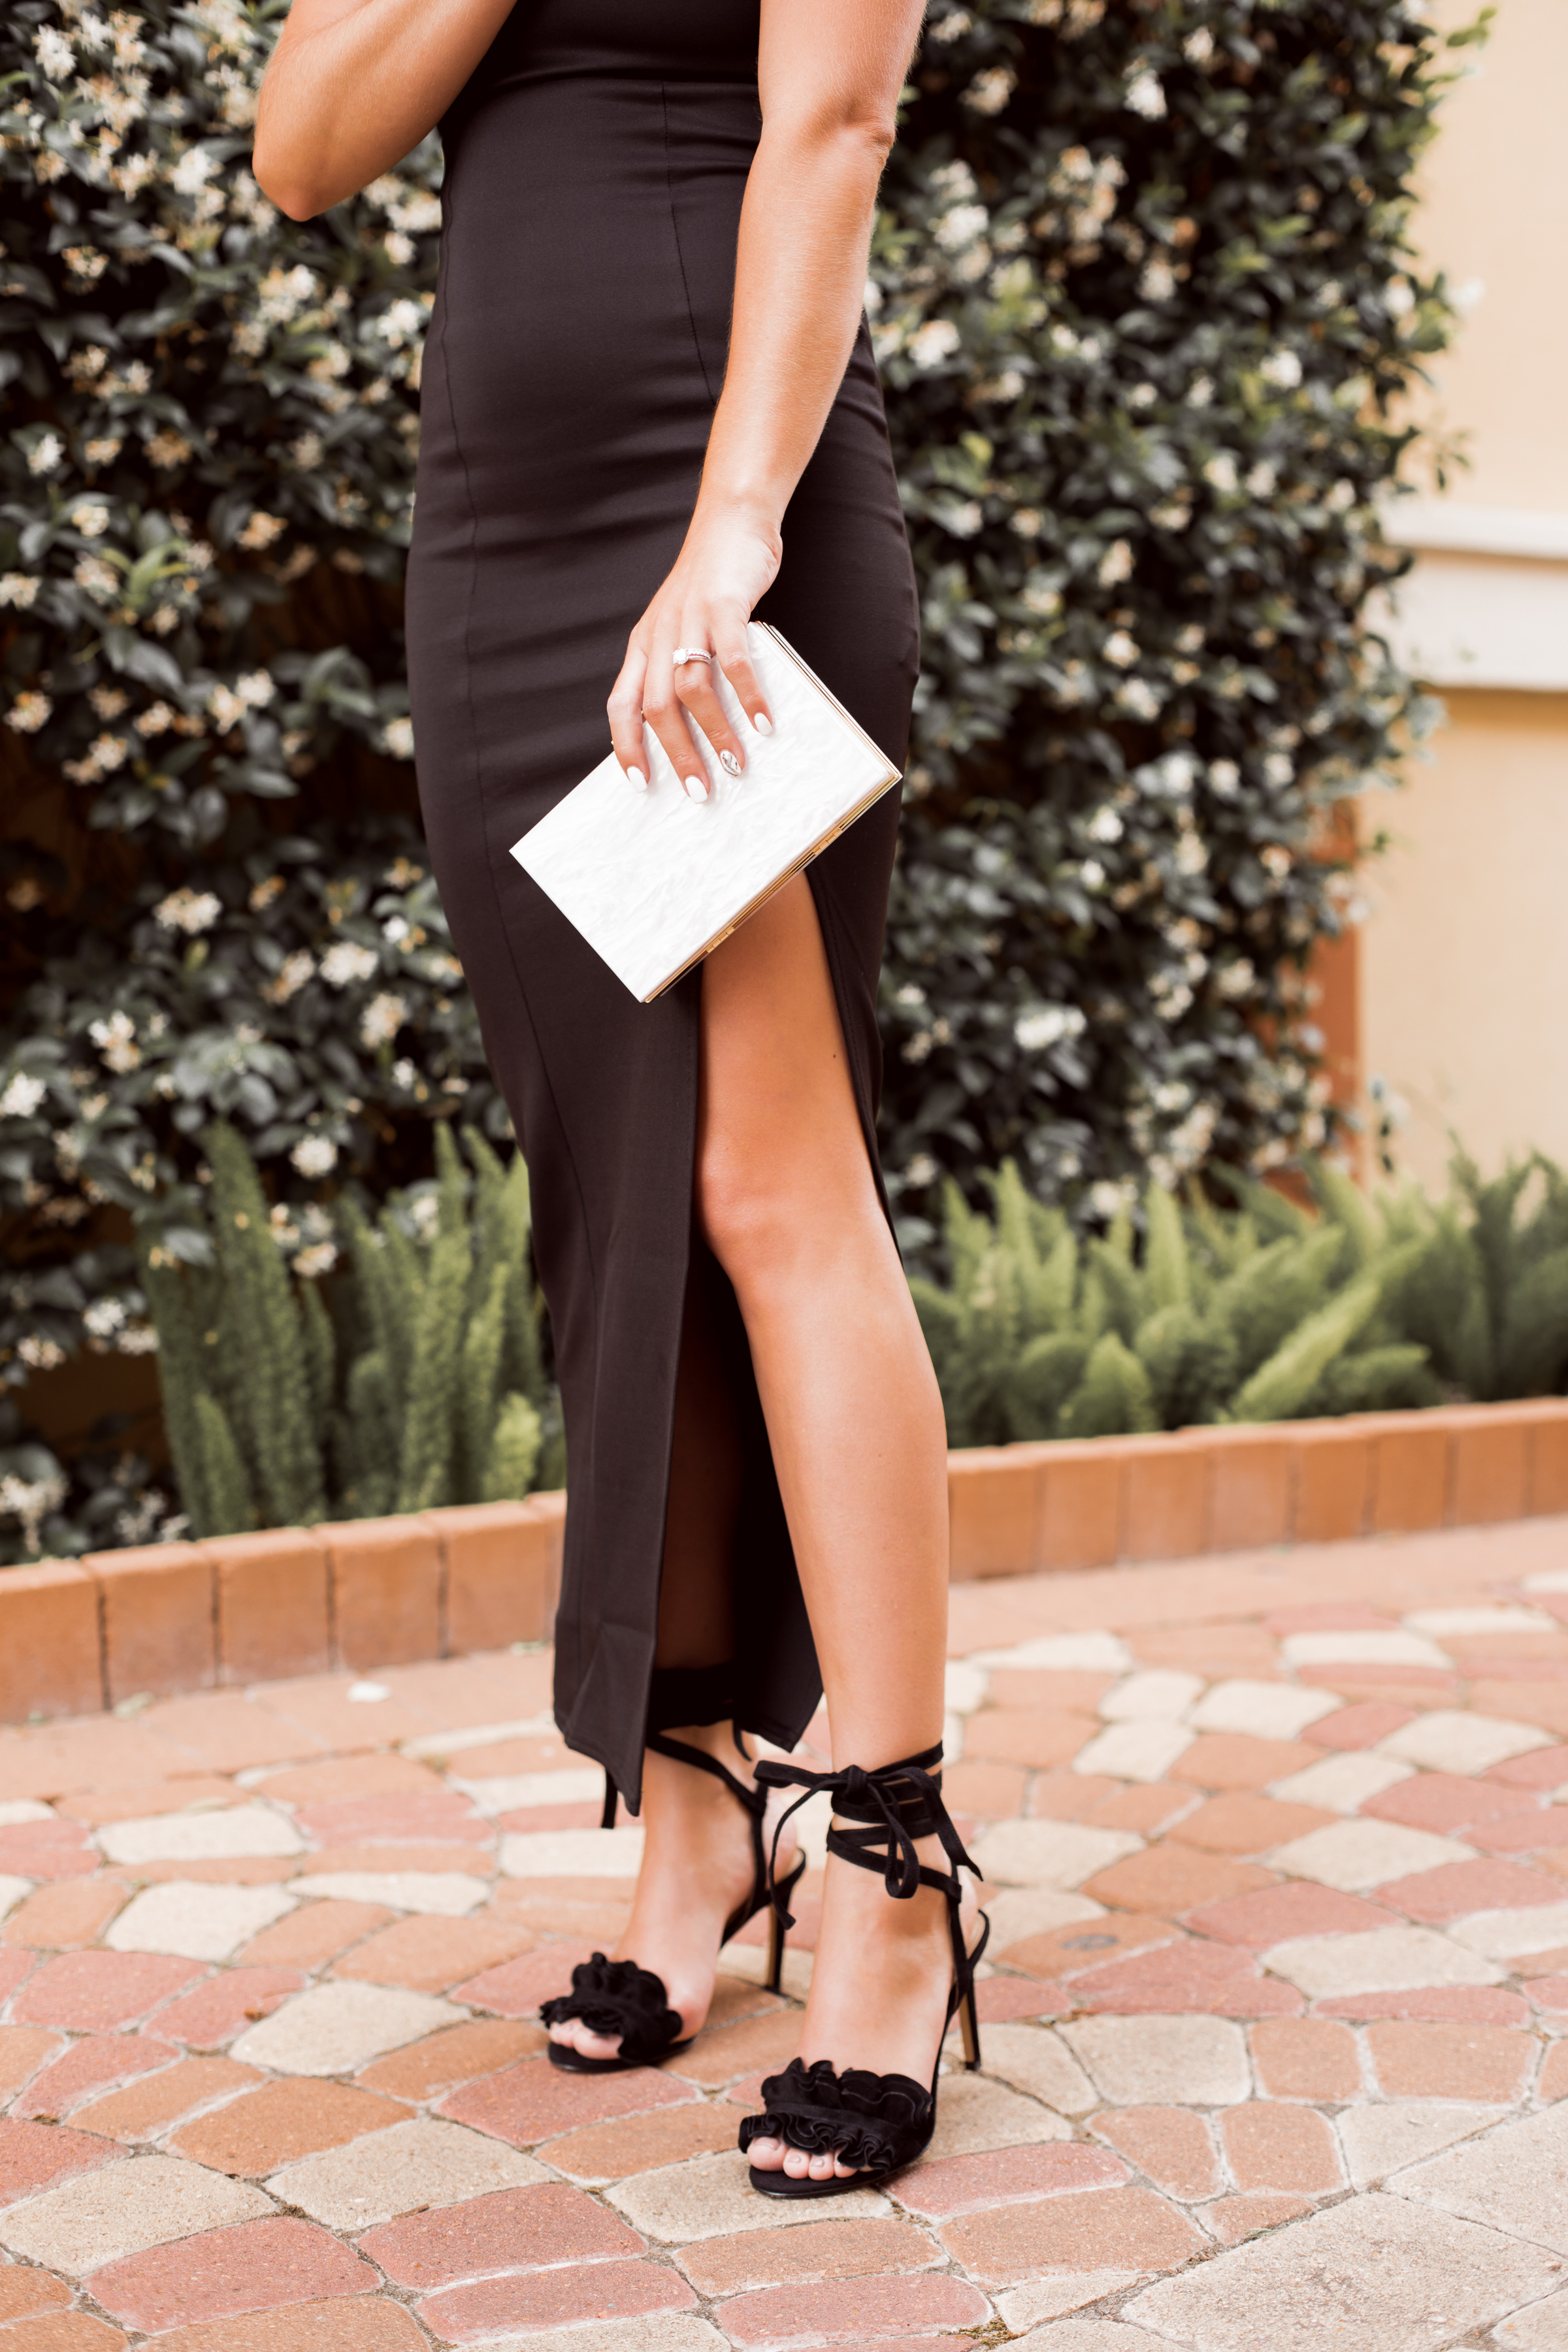 Houston fashion blogger Uptown with Elly Brown shares What To Wear To A Formal Wedding and her top formal dress picks under $100. Click here for more!